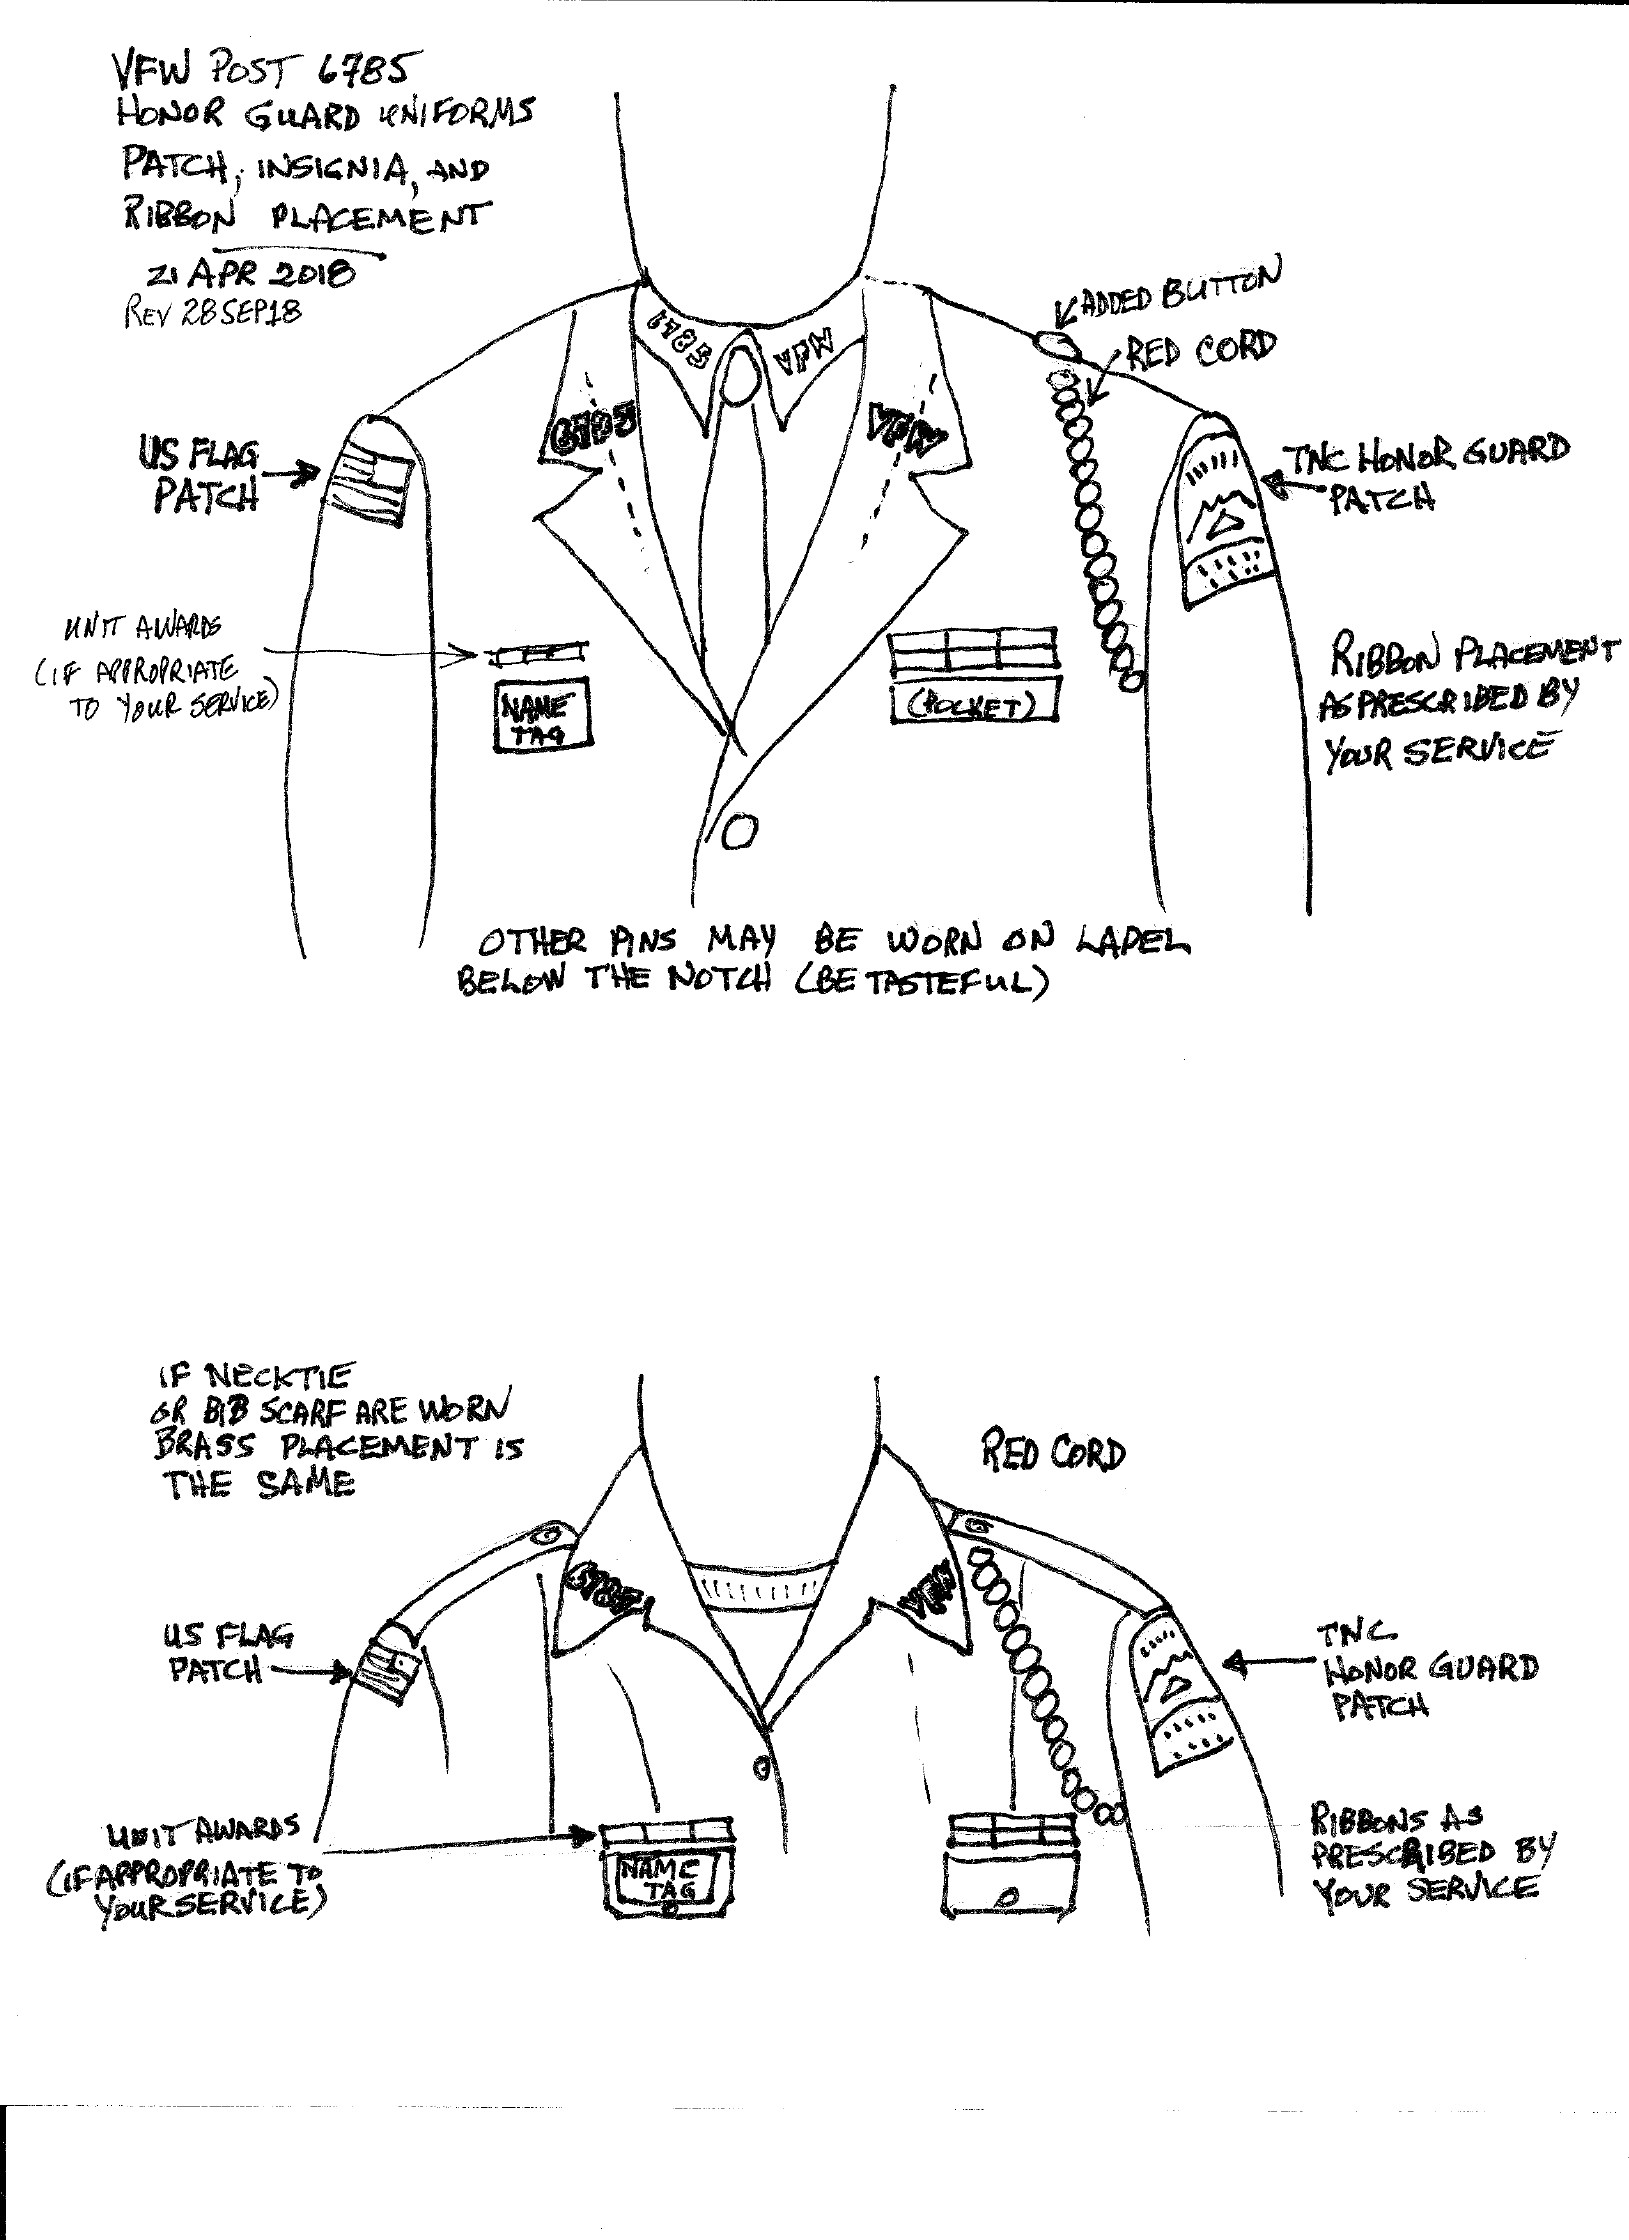 Wearing Of Honor Guard Uniforms